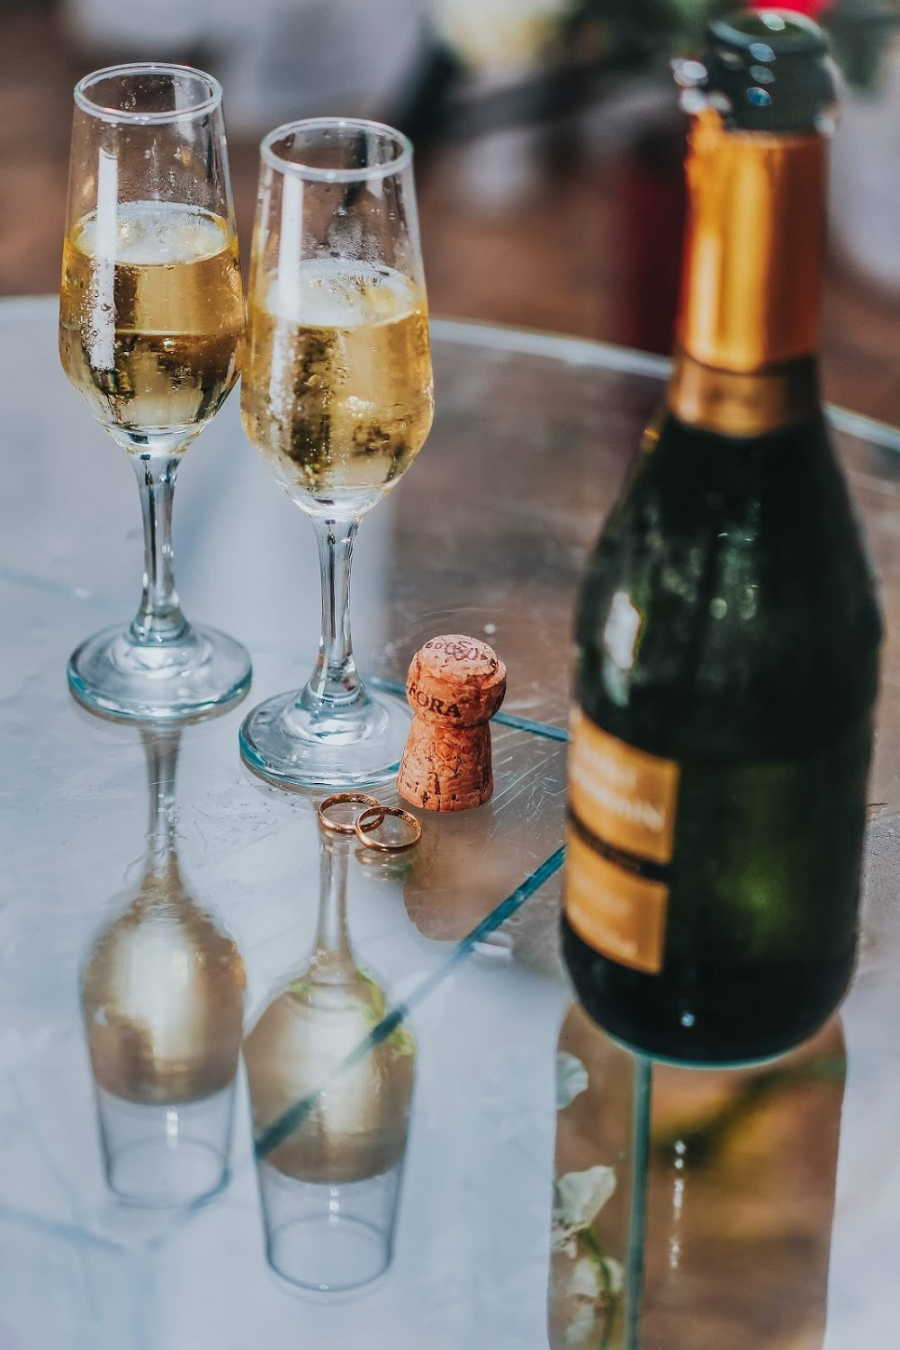 Is Sparkling Wine Champagne?